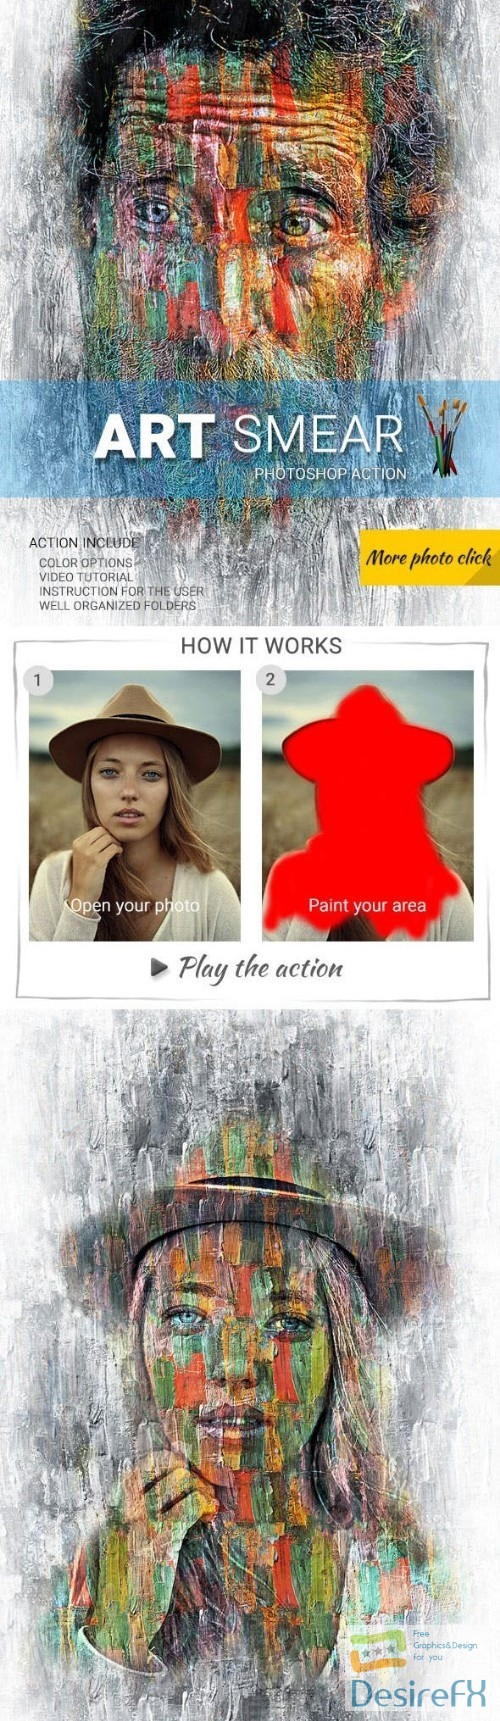 actions-atn - Art smear Photoshop Action